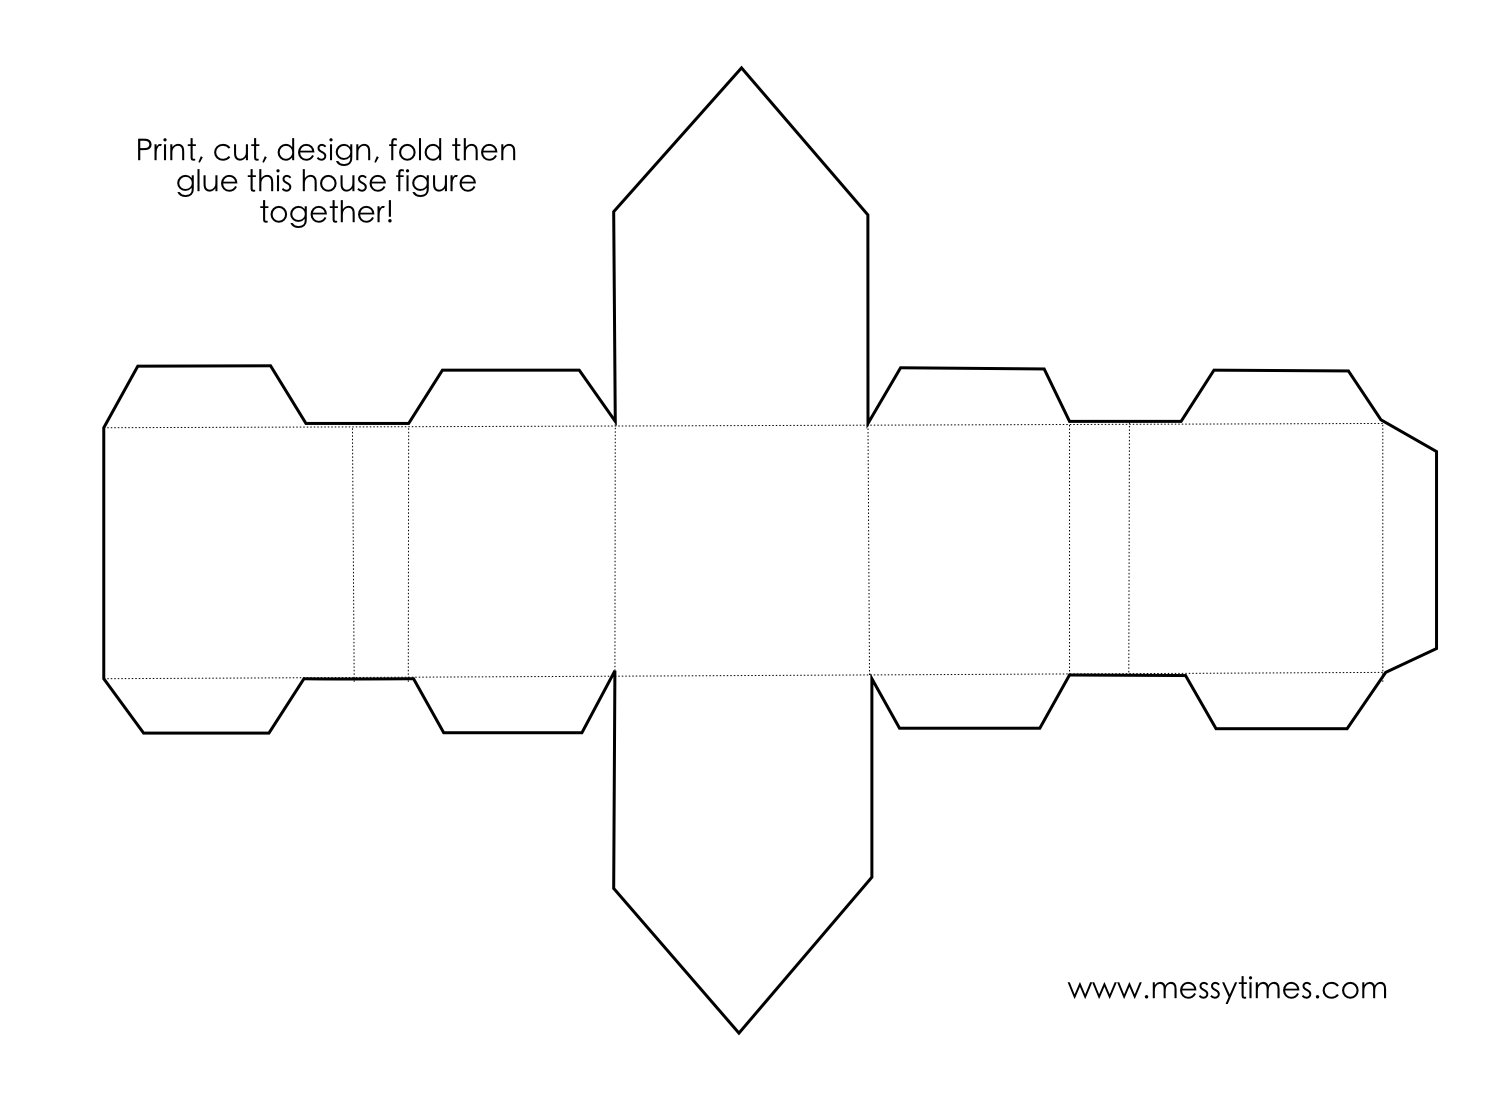 A 3d House Object To Cut Design Fold And Glue Together